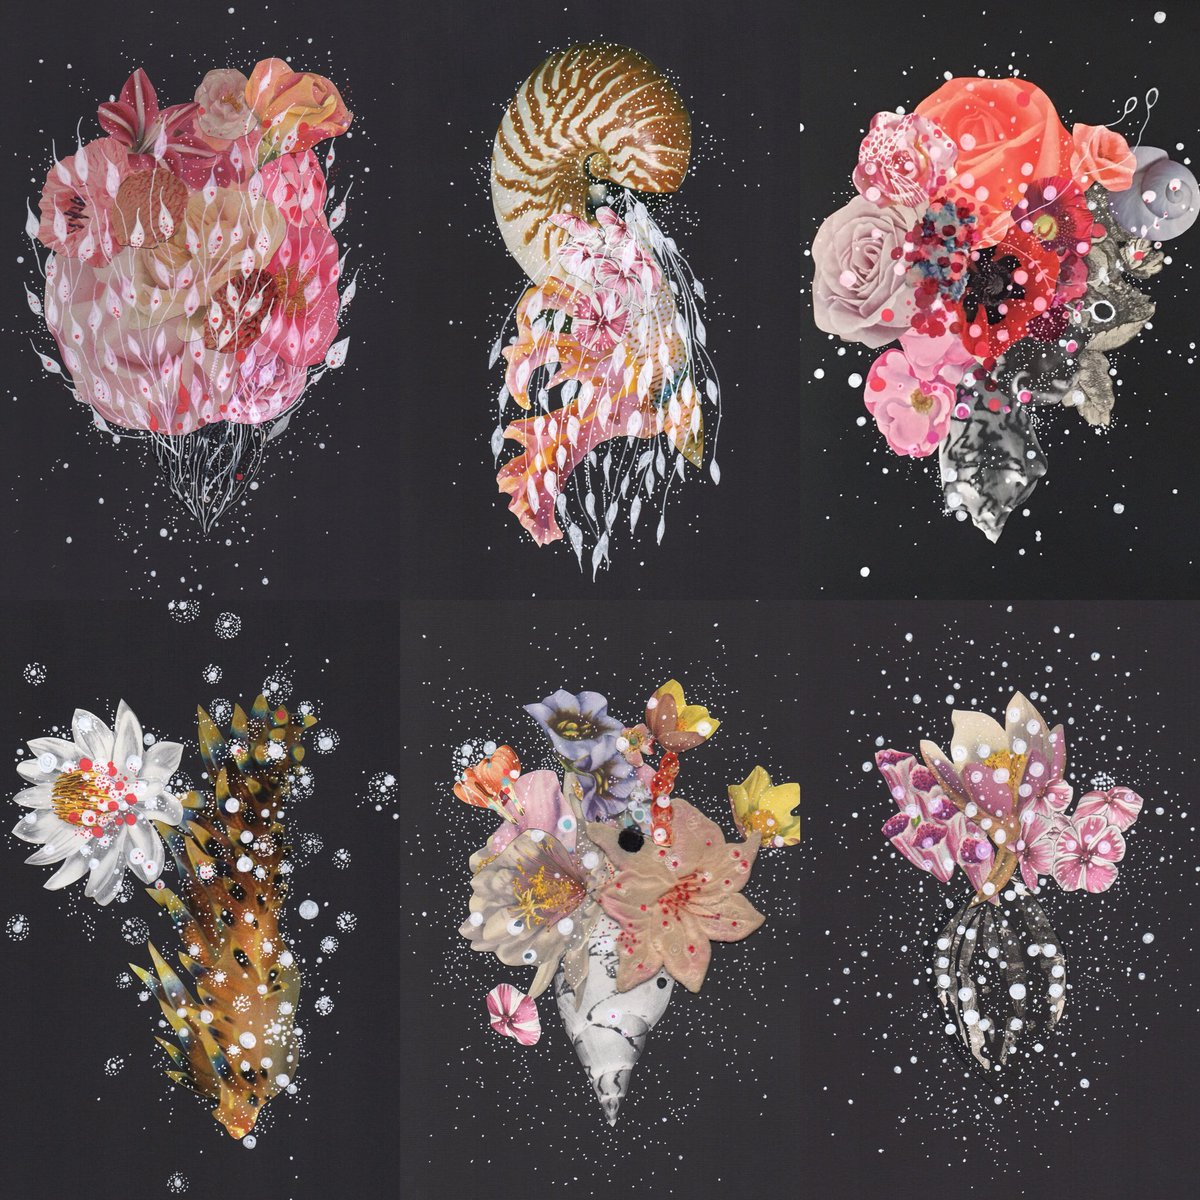 Starry skies, night seas. My works of pen, ink, and collage on paper. Flame, veil, bouquet, fern, and infinite magic. #inmycosmos #celestial #cosmos #magic #science #art #sealife #cosmic <br>http://pic.twitter.com/mlBRzZwP5b